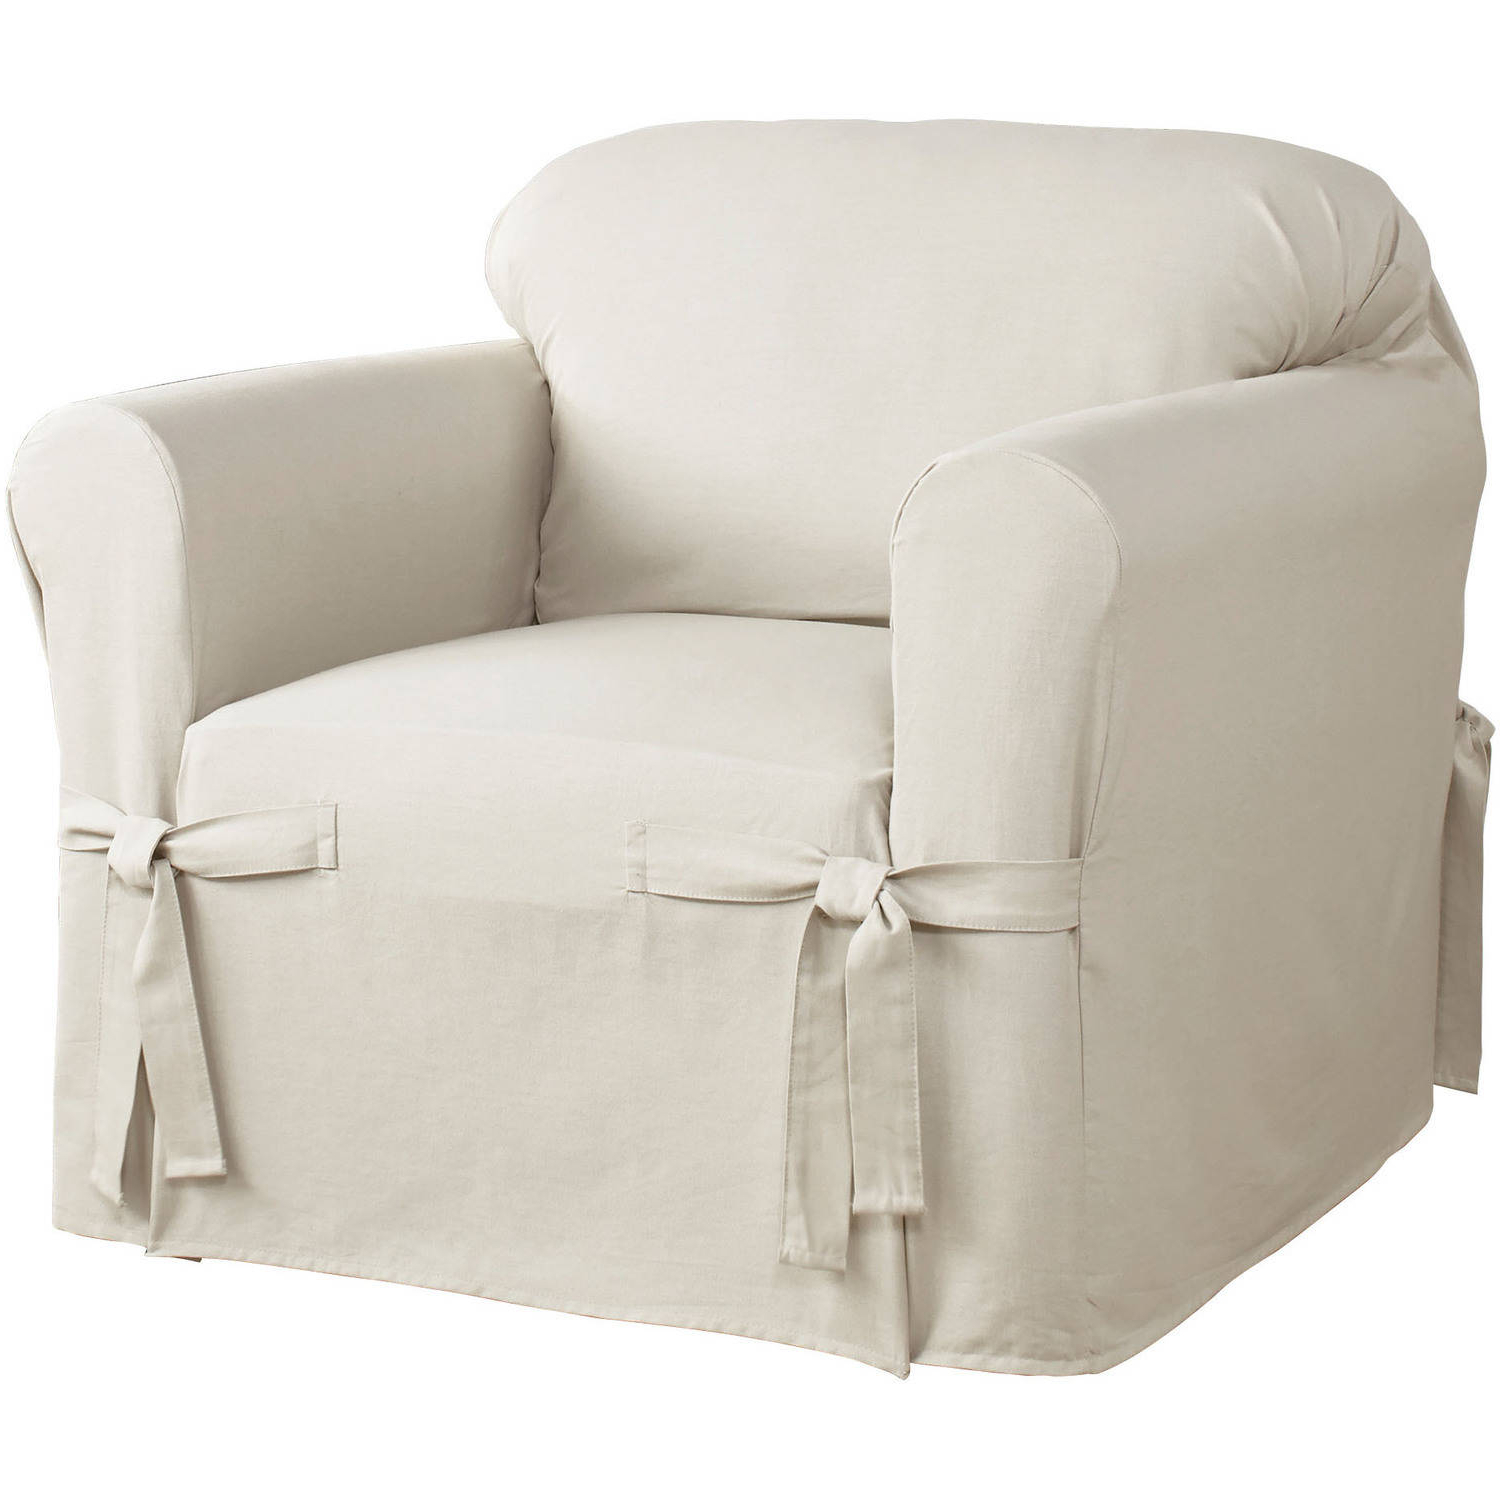 Well Liked Serta Relaxed Fit Cotton Duck Furniture Slipcover, Chair 1 Piece Box Throughout Slipcovers For Chairs And Sofas (Gallery 10 of 20)